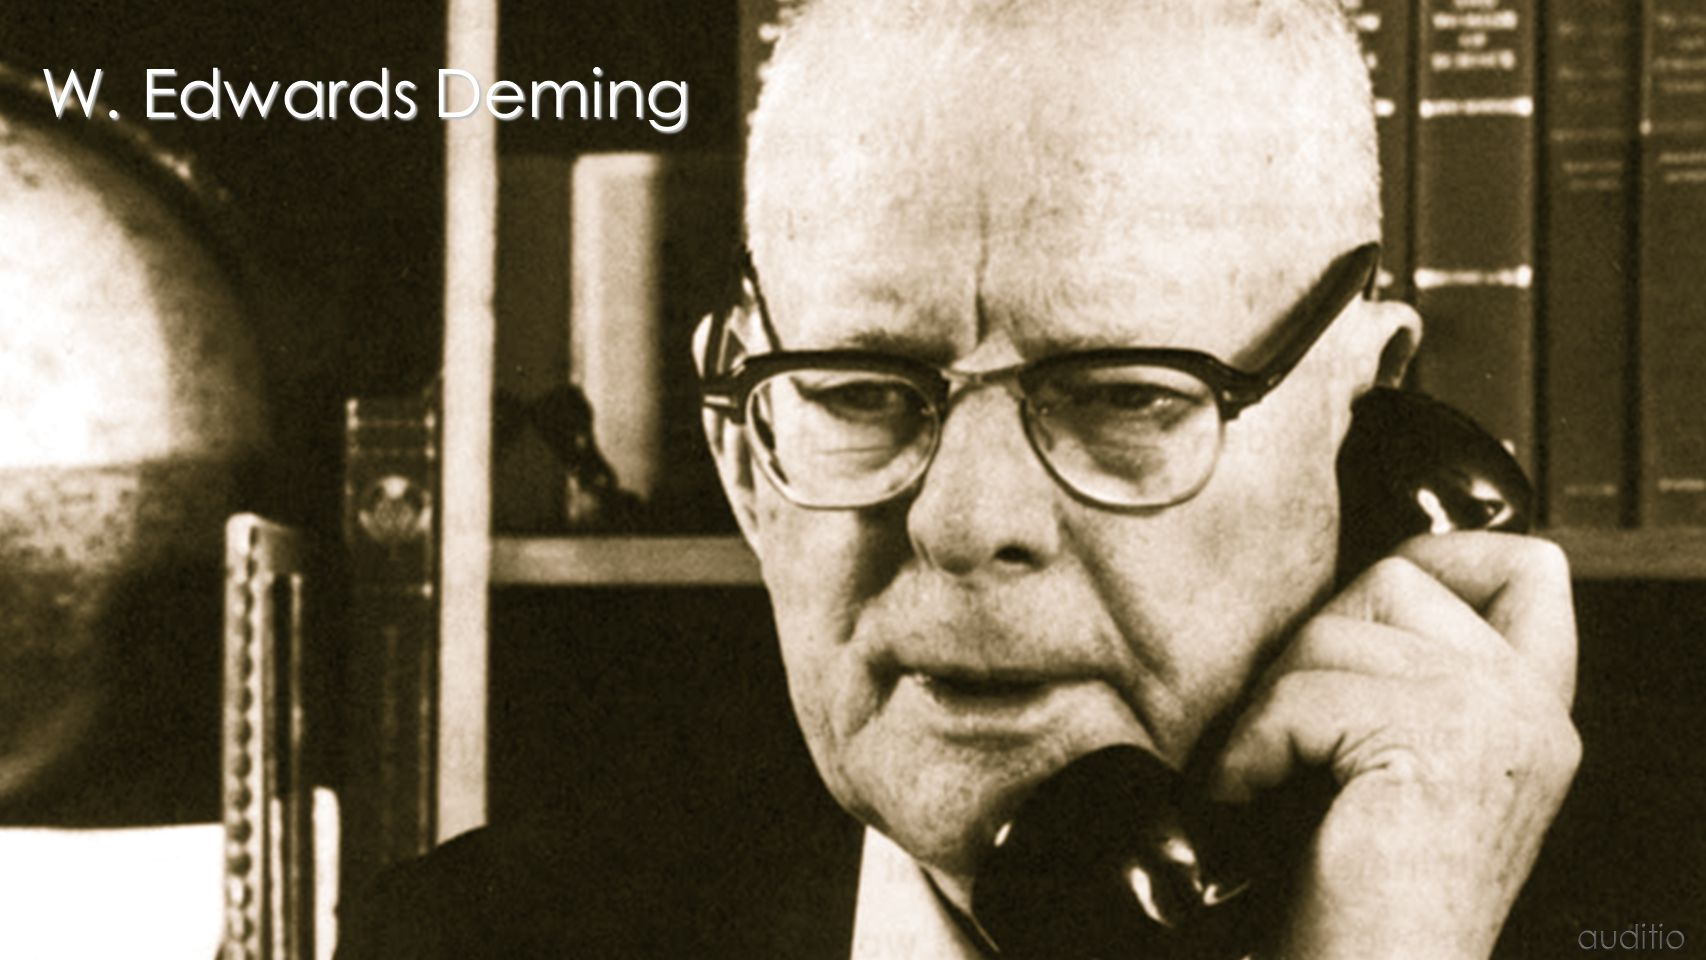 W. Edwards Deming auditio